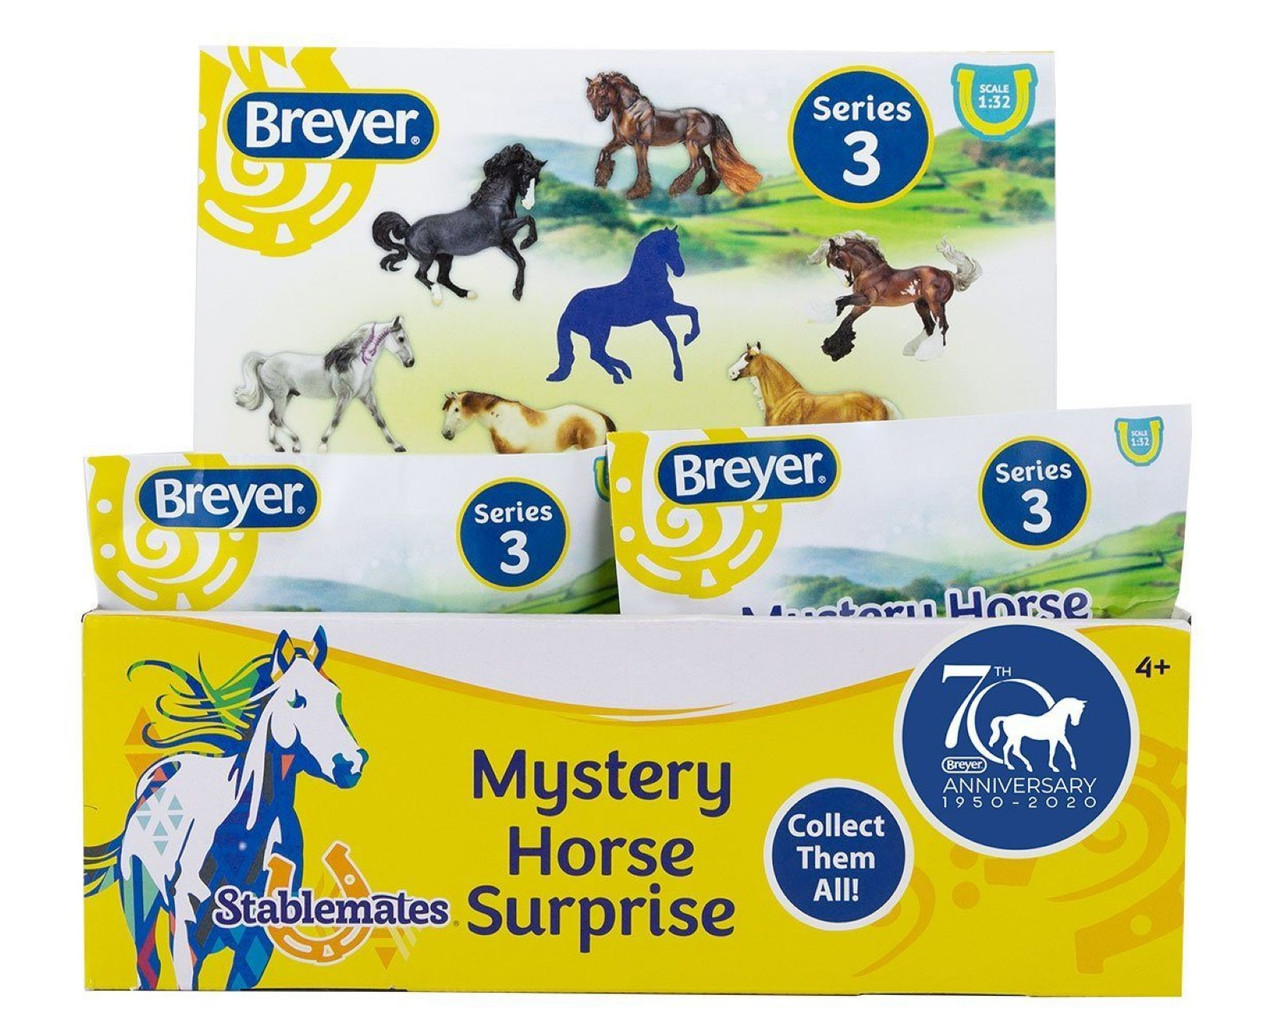 Breyer Horses Stablemates 70th Anniversary Blind Bag Box Of 24 Bags 1 32 Scale 6065 Model Horses